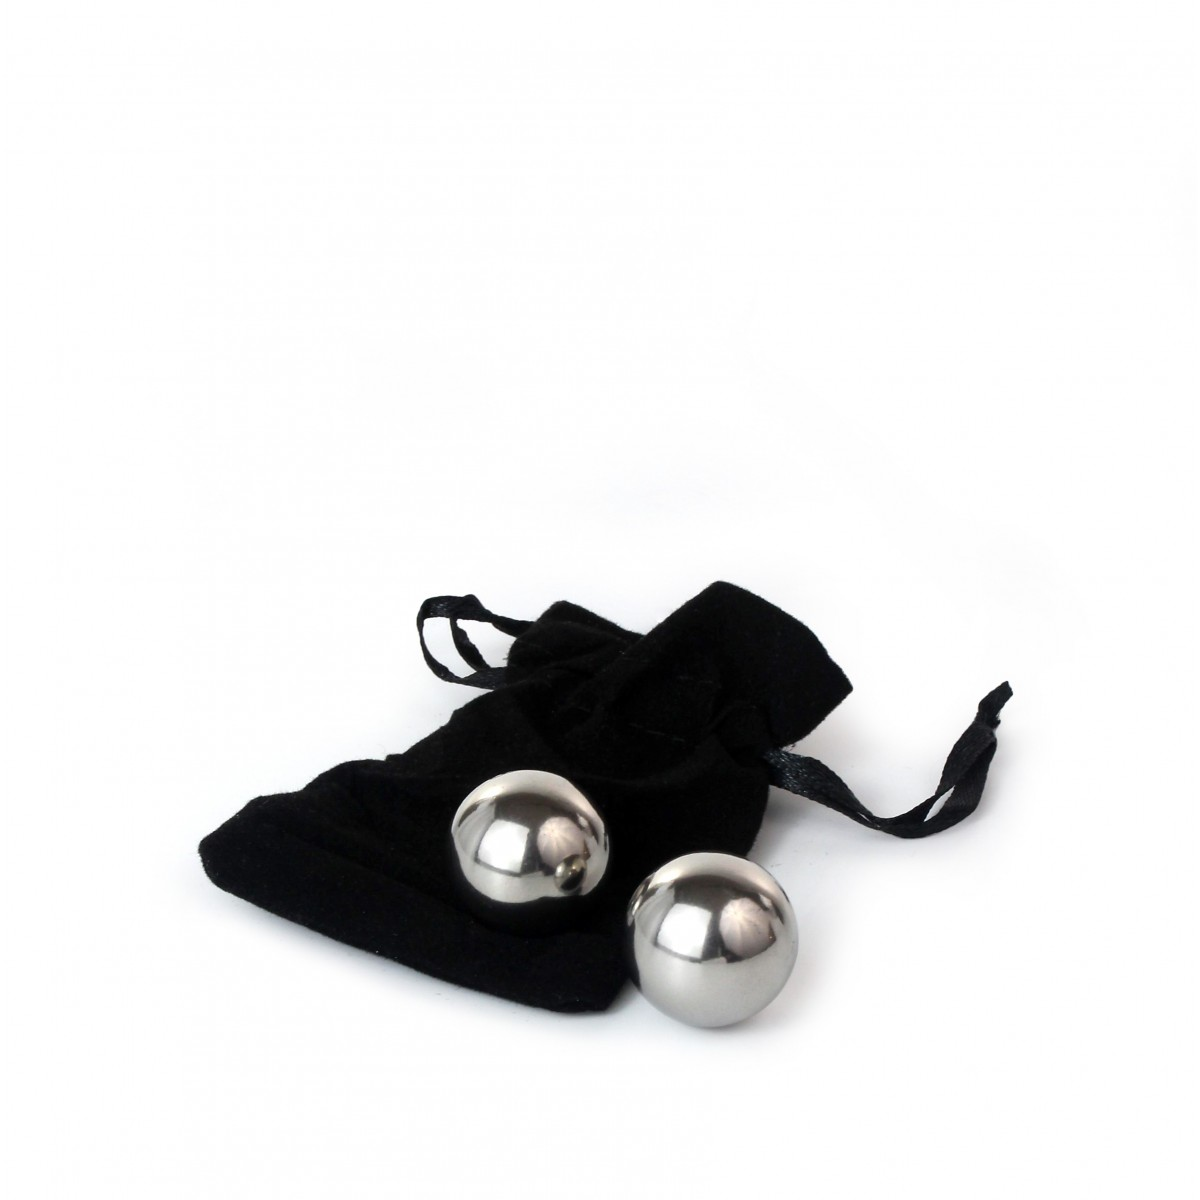 stainless steel kegel balls